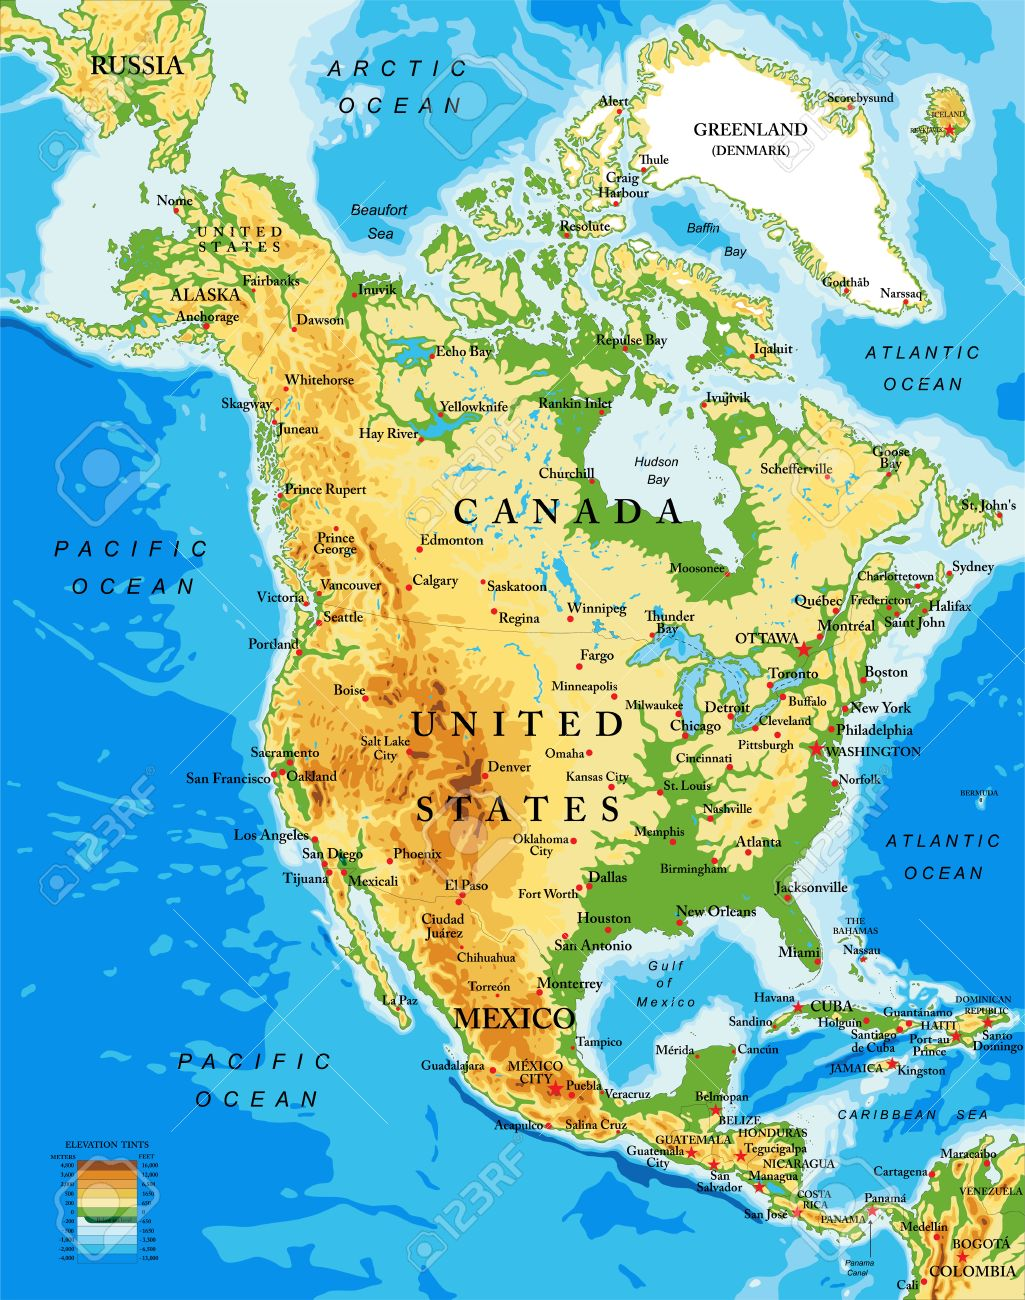 Physical map of North America on map us and mexico map, hawaii continent map, north america west map, north america earth map, north america scale map, north america land map, north america environment map, canada continent map, north america power map, blank north america map, north america plateau map, jordan continent map, north america coast map, north america area map, north america sea map, argentina continent map, north america canyon map, north america south map, north america grid square map,